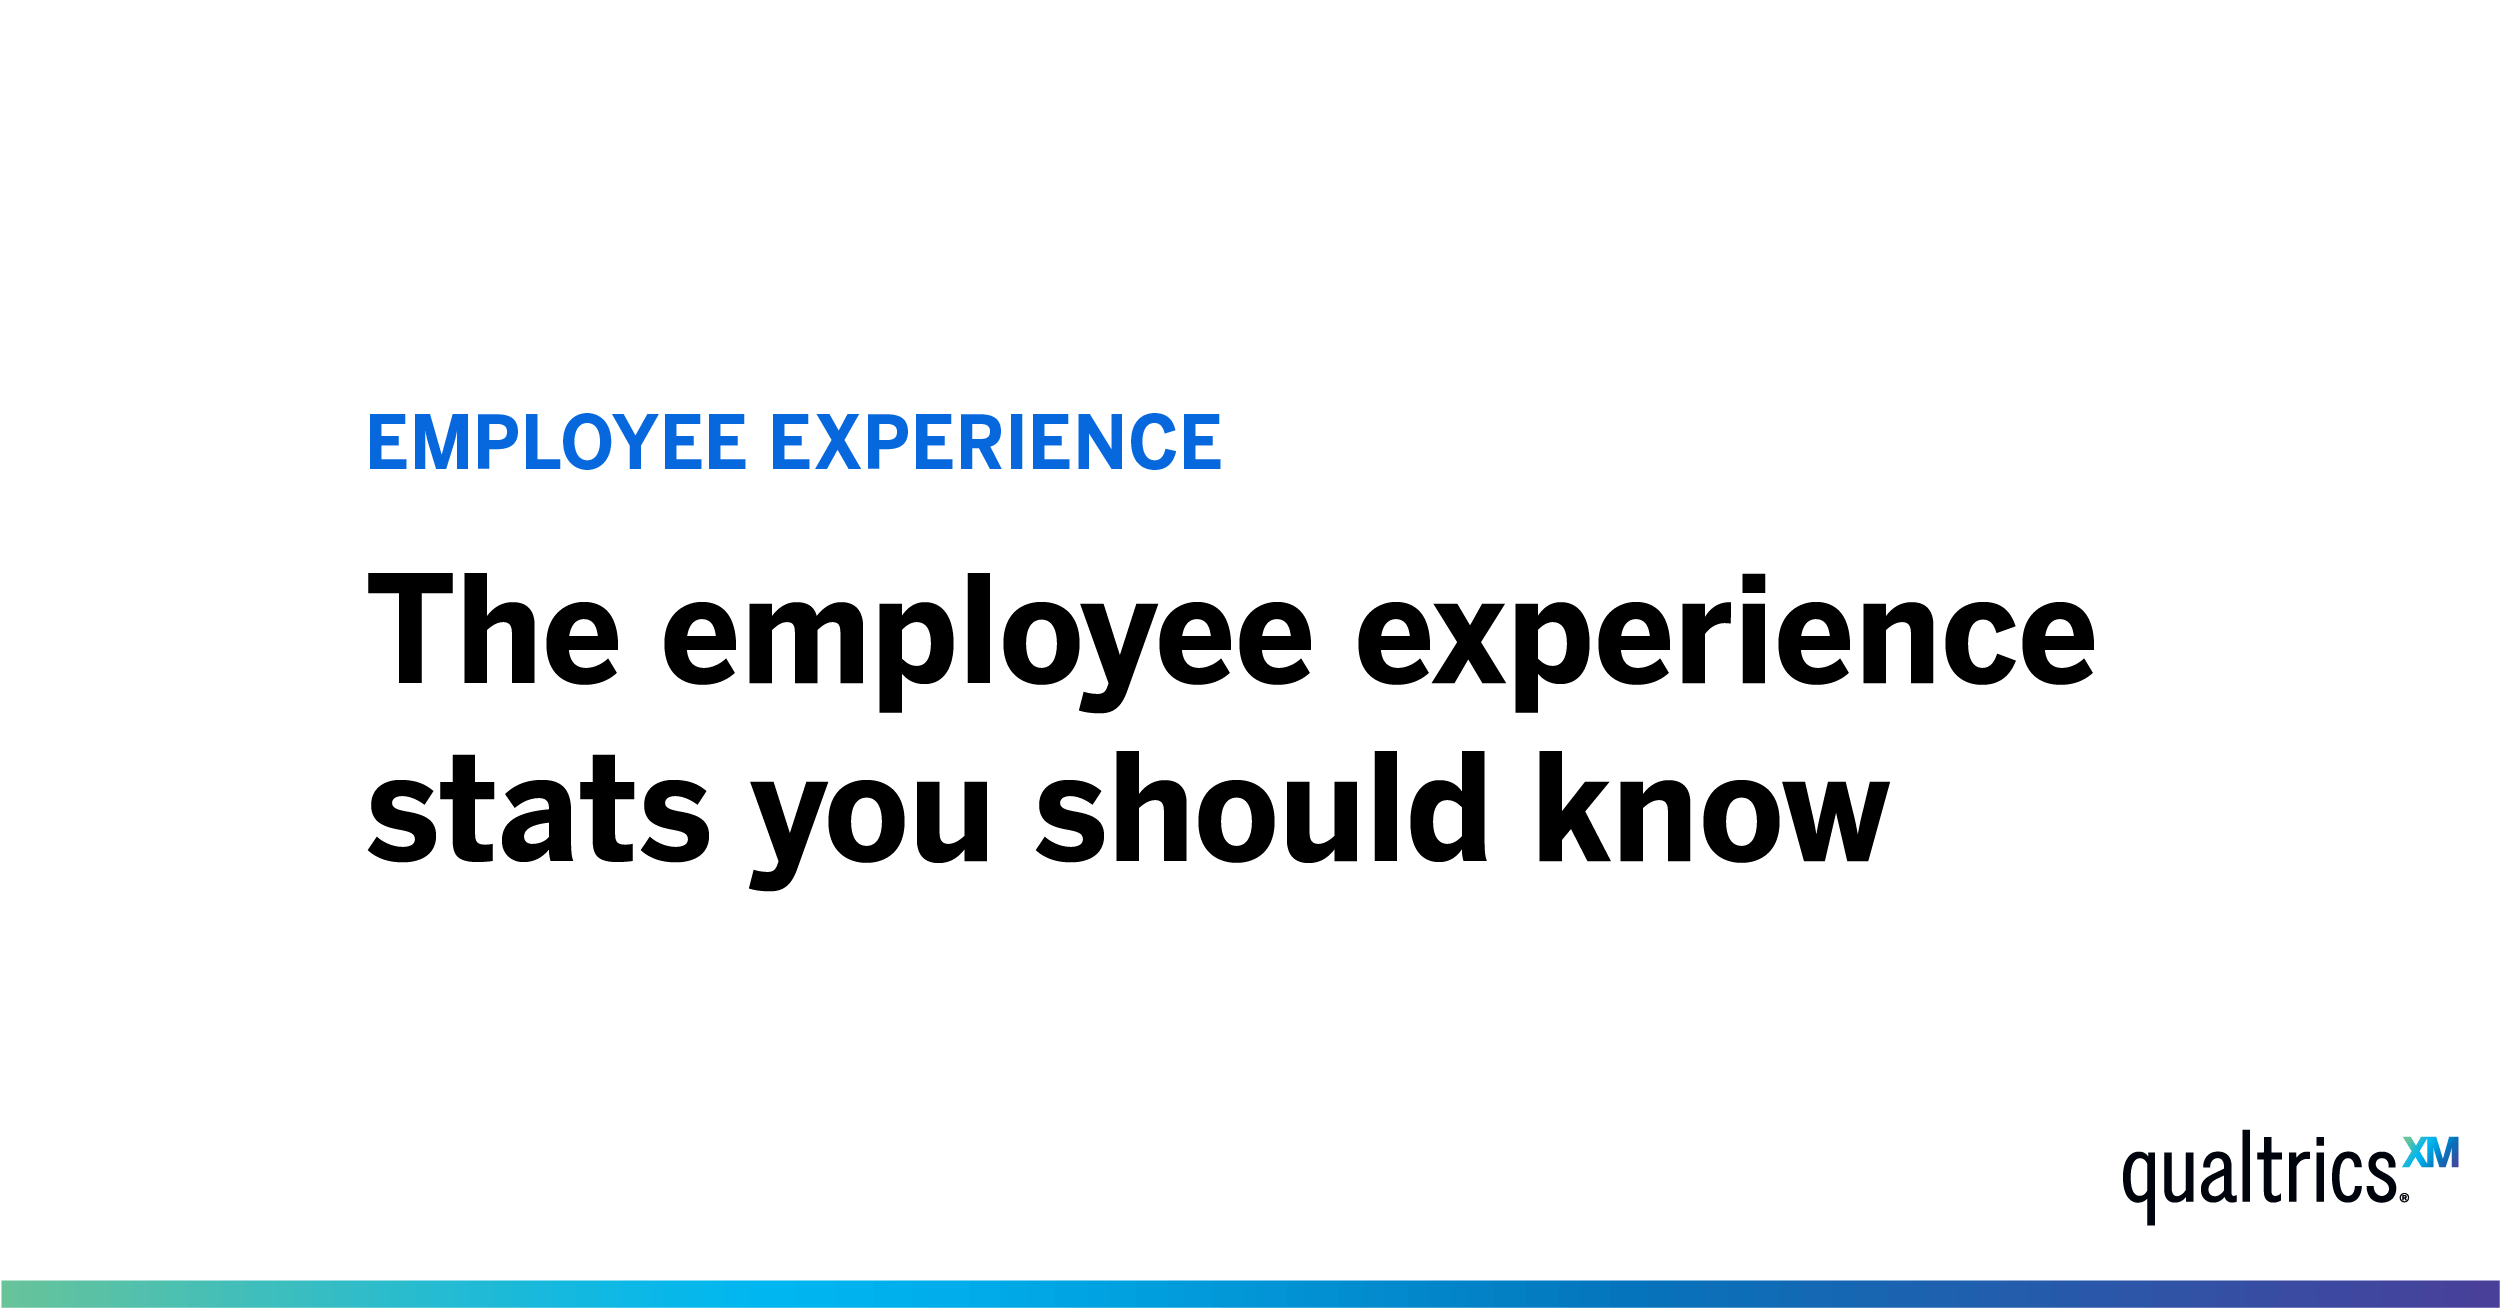 18 employee experience and engagement stats to know in 2019